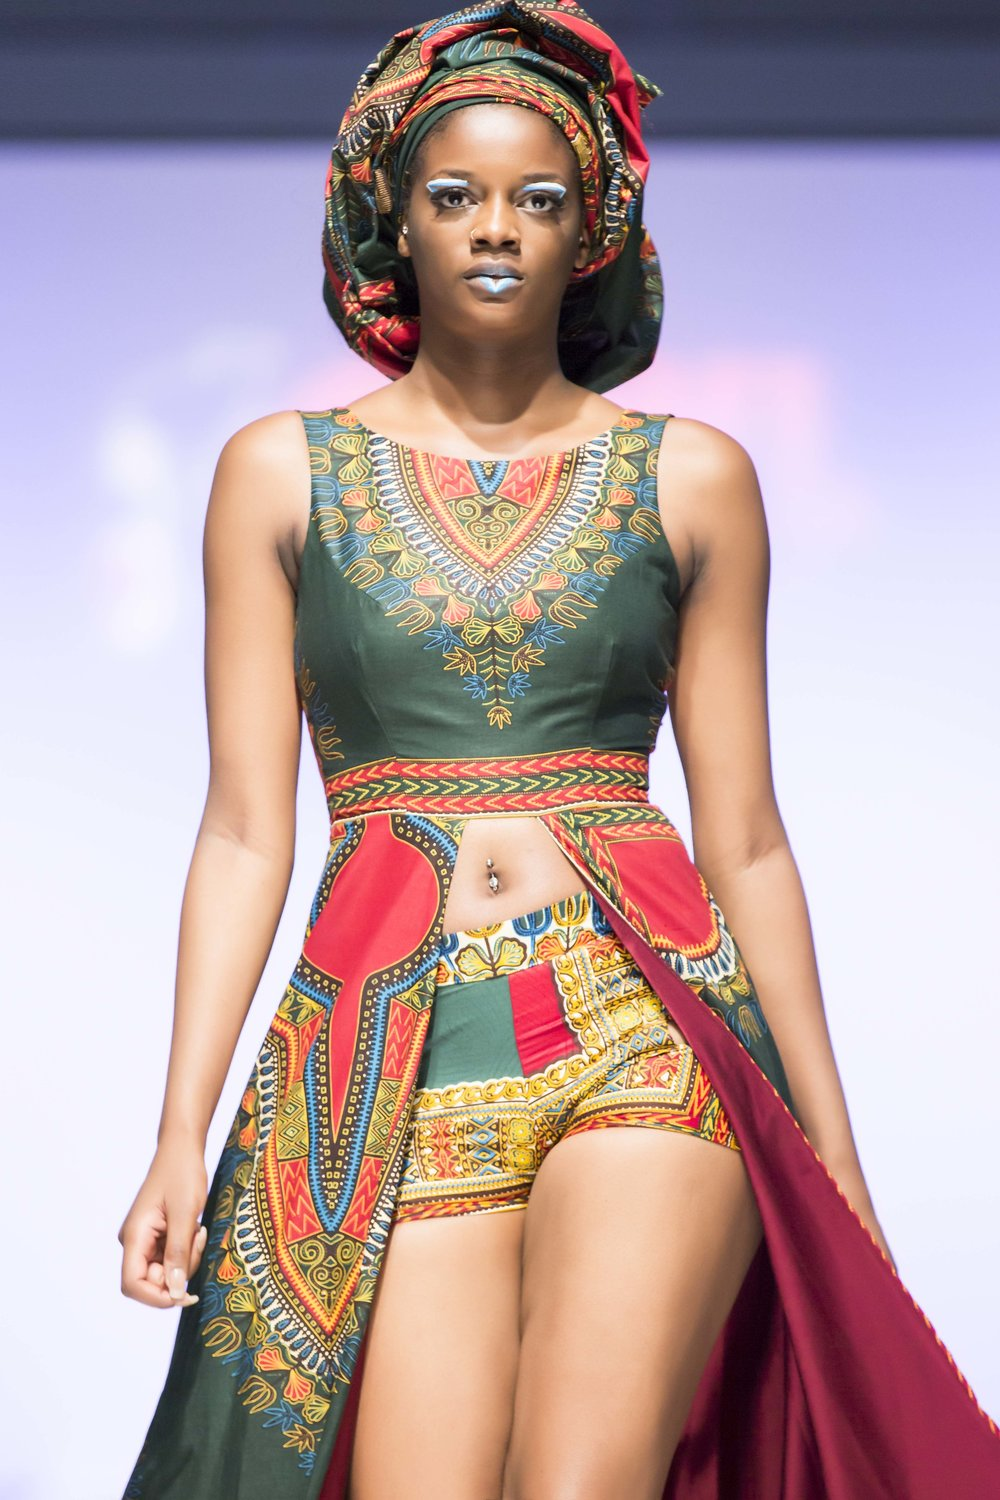 African Fashion Today-Joanna Mitroi Photography 0877 - lores.jpg